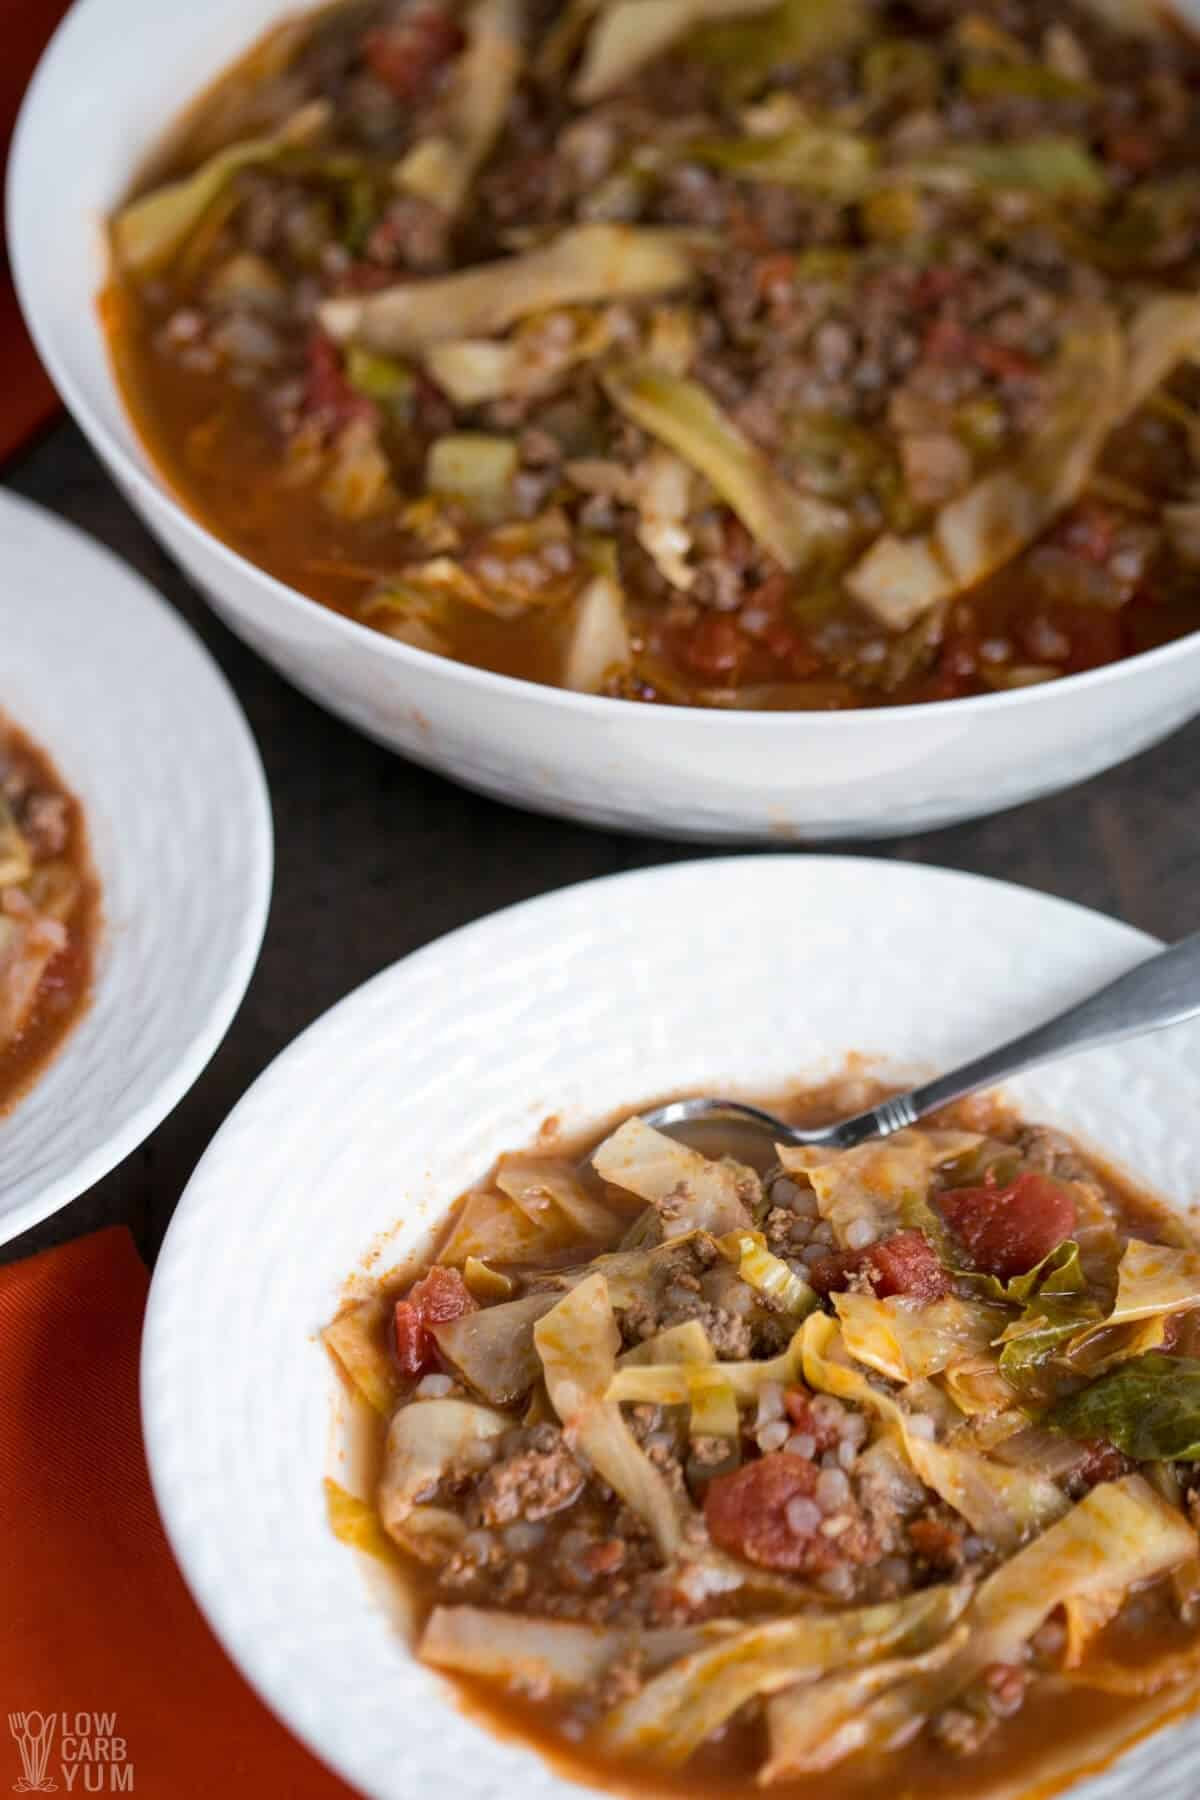 Are you a cabbage roll fan but hate all the work involved to make them? If so, you need to try this easy unstuffed cabbage soup recipe.